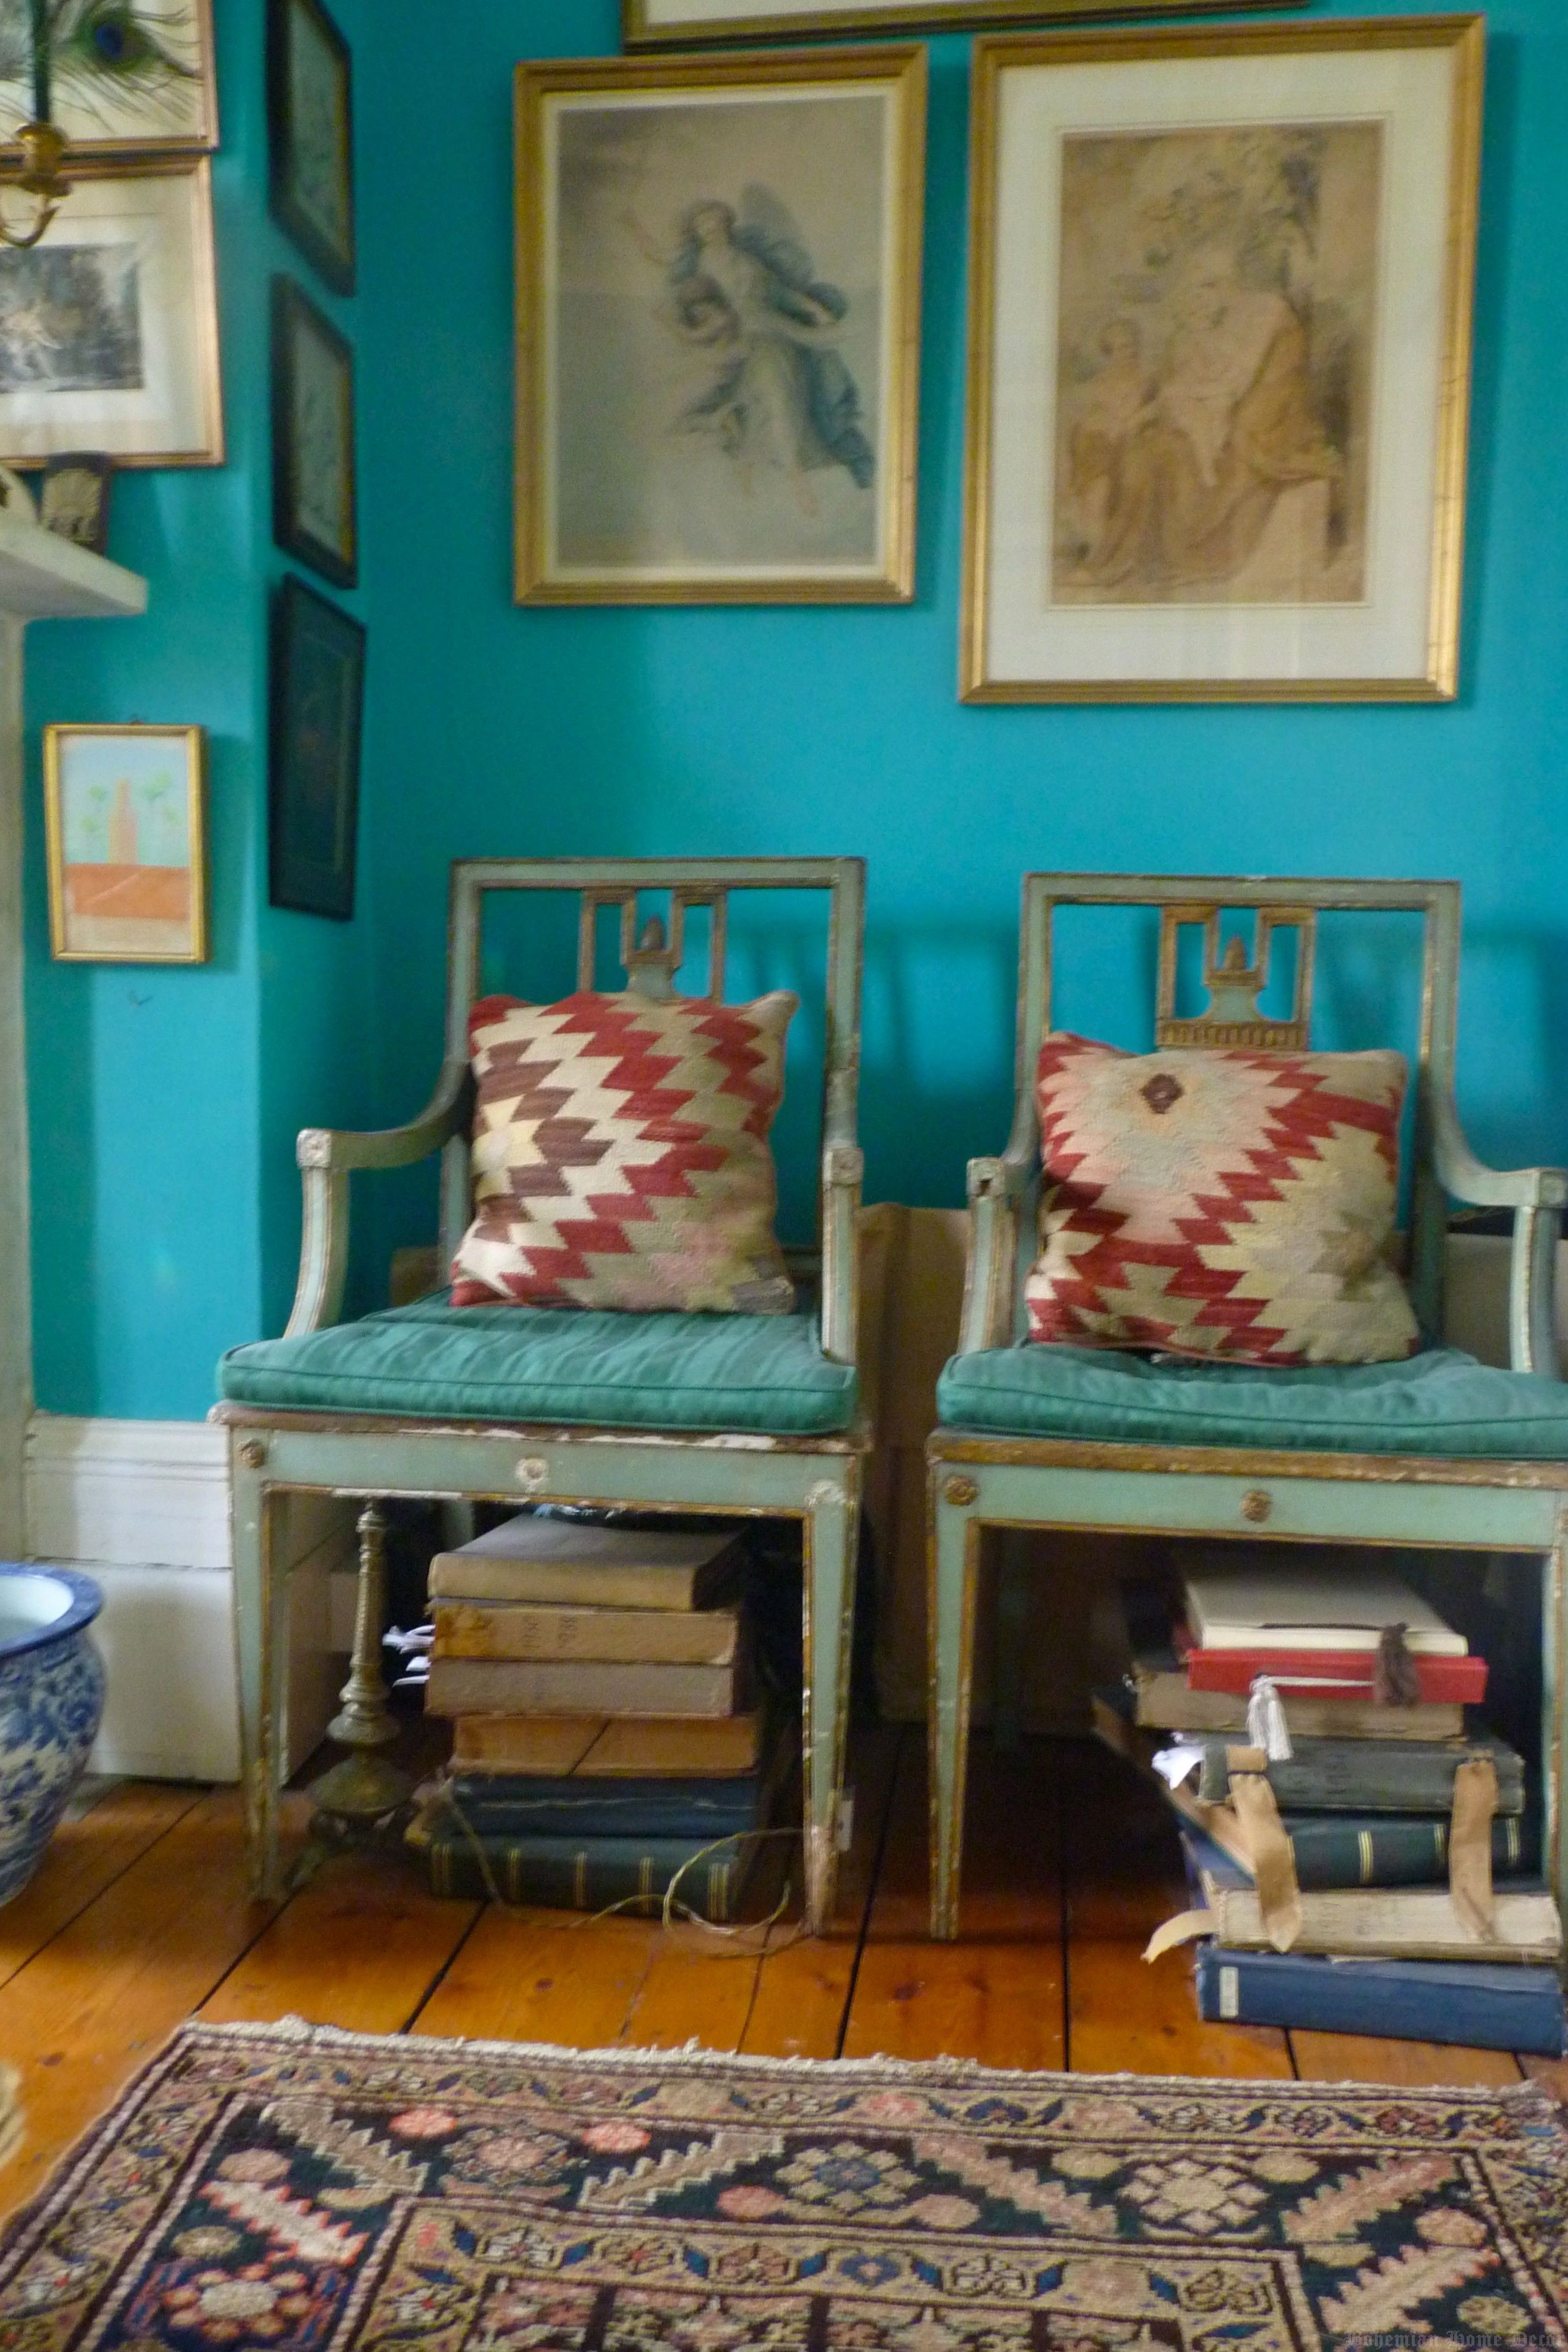 Bohemian Home Decor It! Lessons From The Oscars